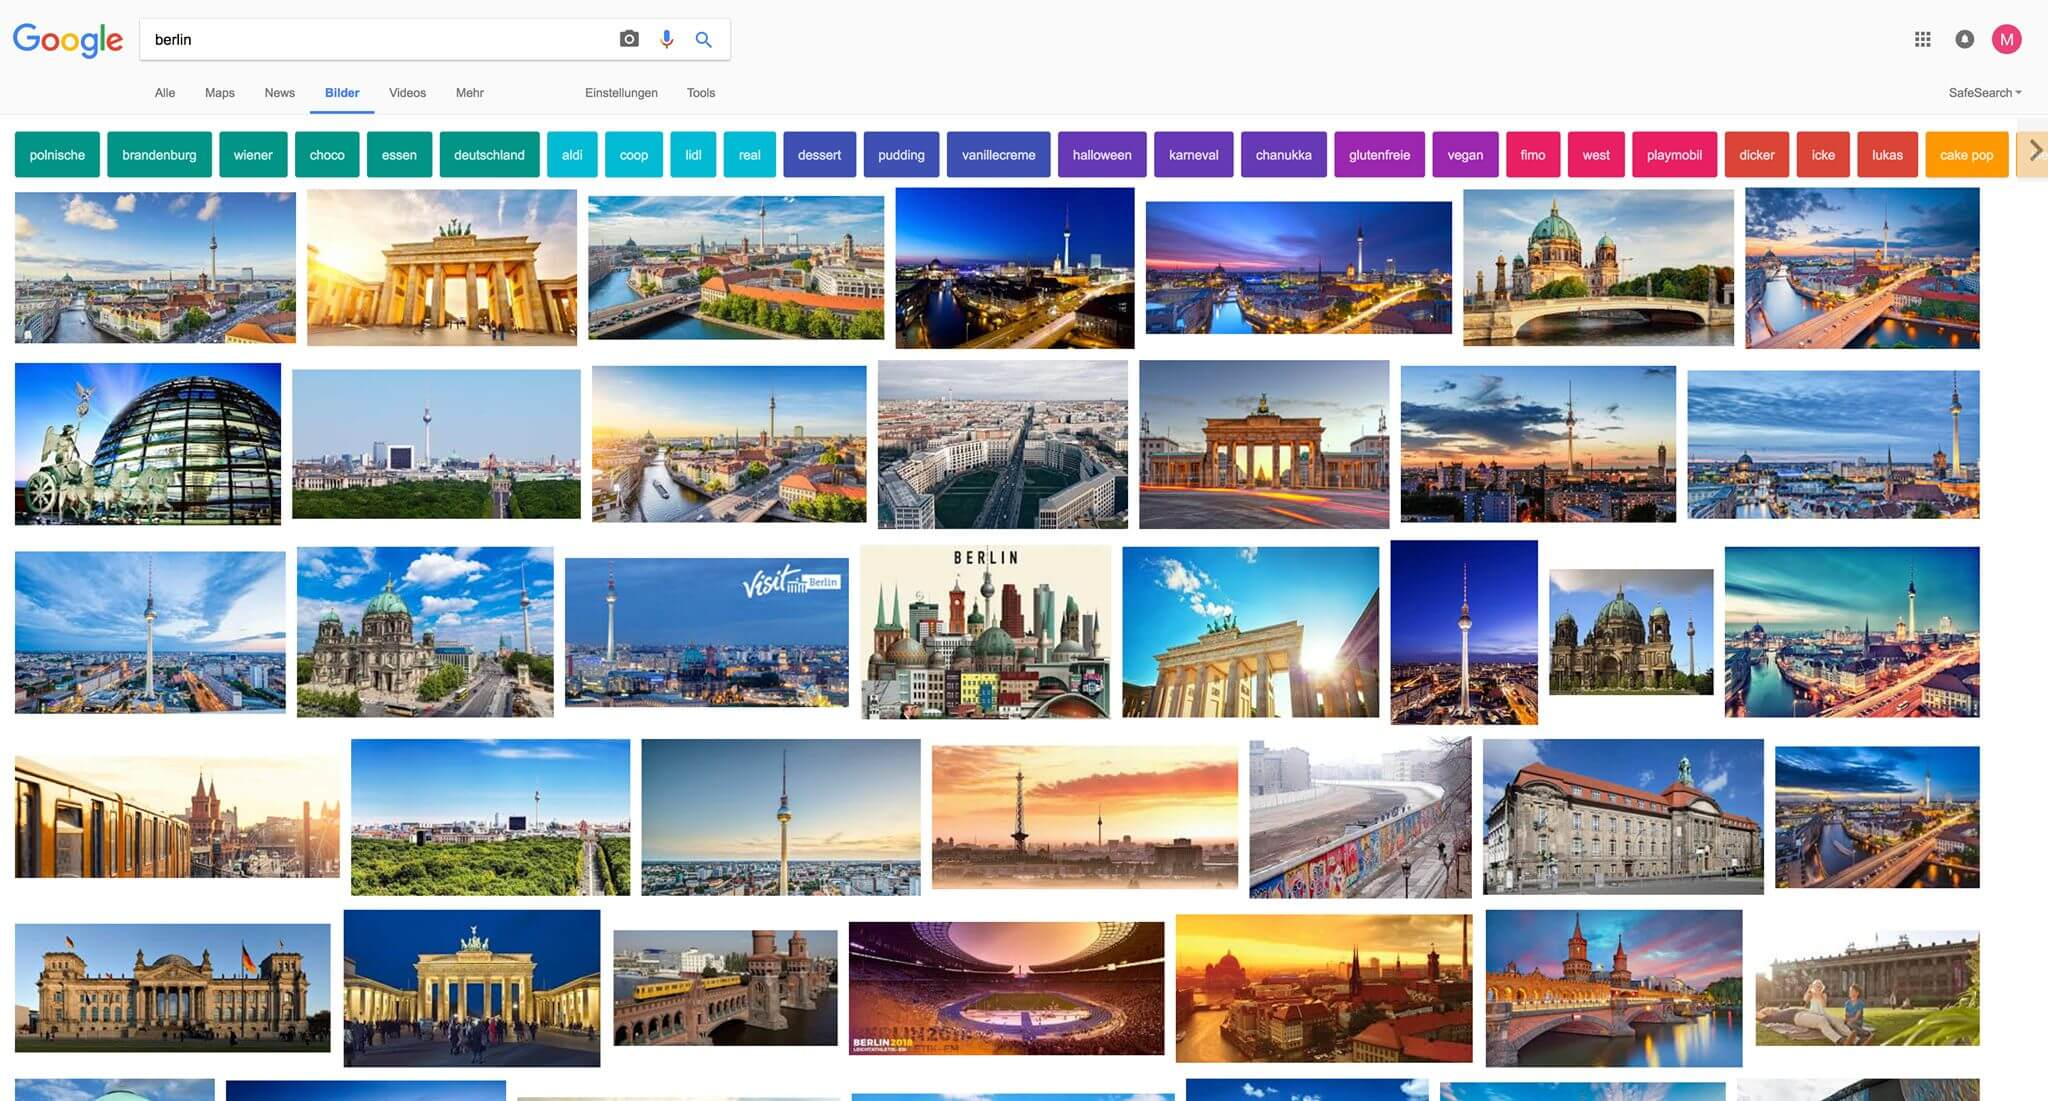 google image search test